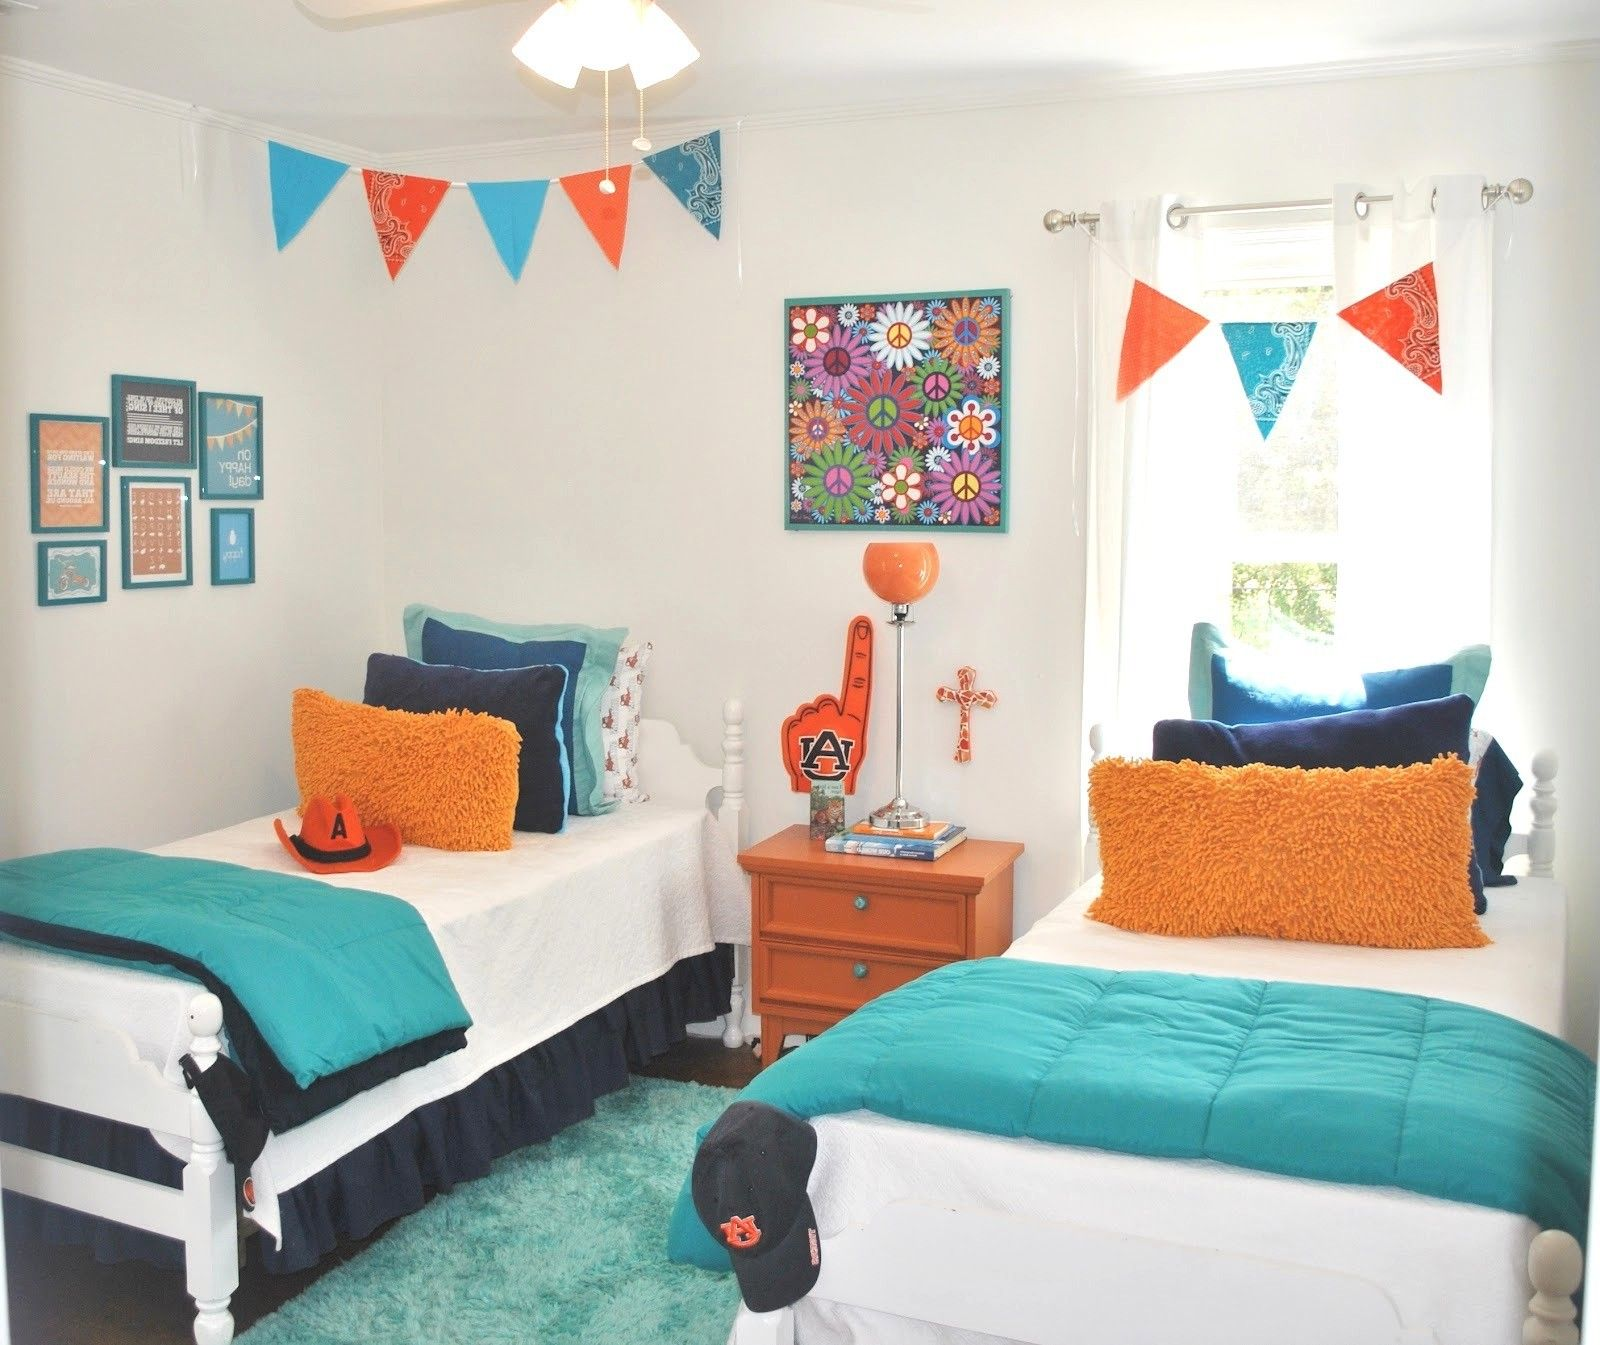 bedroom   Astounding Boy And Girl Shared Bedroom Design Ideas With White  Also With White Wooden Twin Bed Twin Bedroom Ideas Guest Bedroom Decorating  Ideas. Bedroom Unique Toddler Beds For Twins Viewing Gallery Baby Room Of